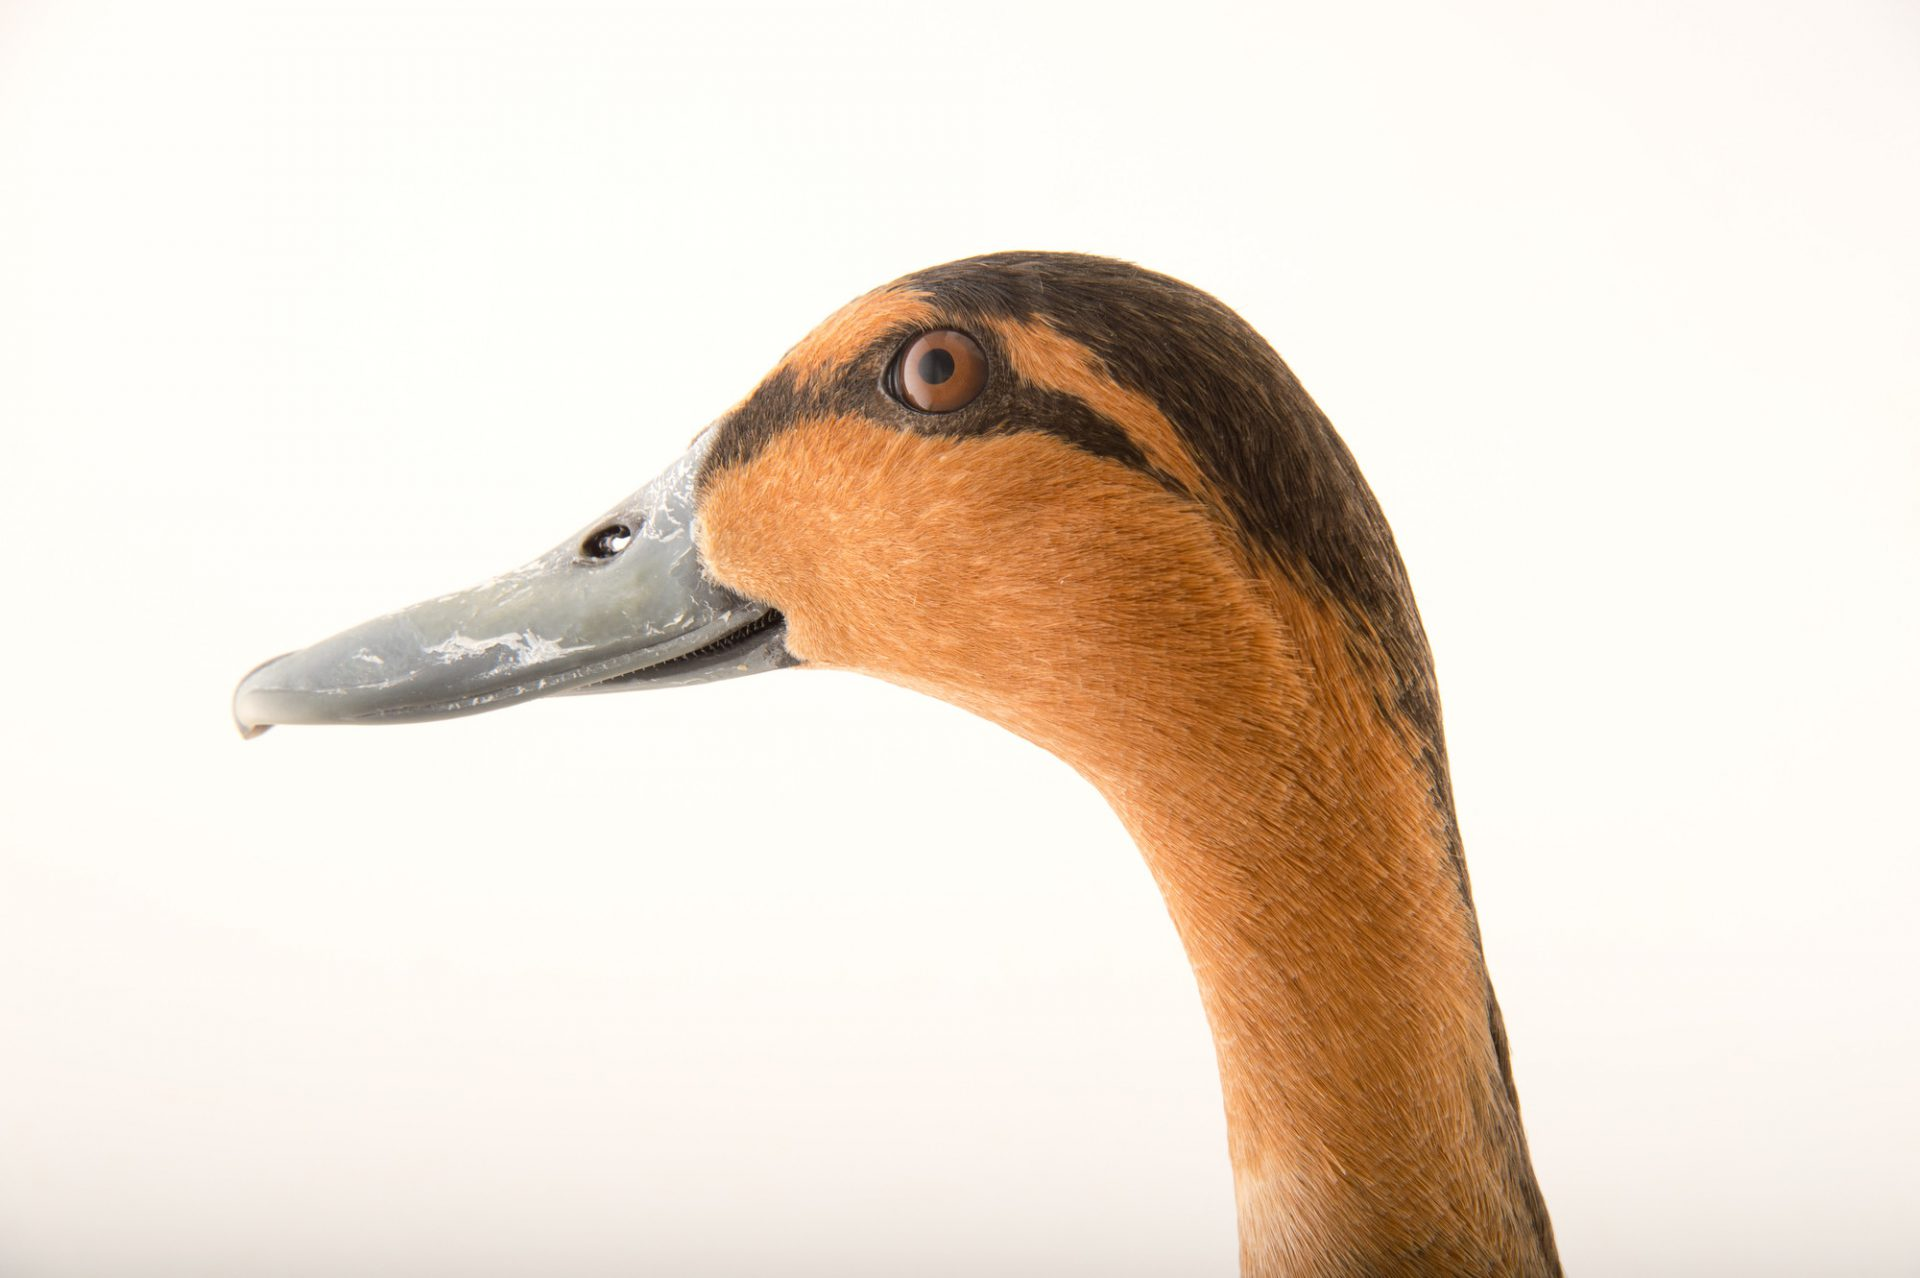 Picture of a vulnerable Philippine duck (Anas luzonica) at the Sylvan Heights Bird Park.